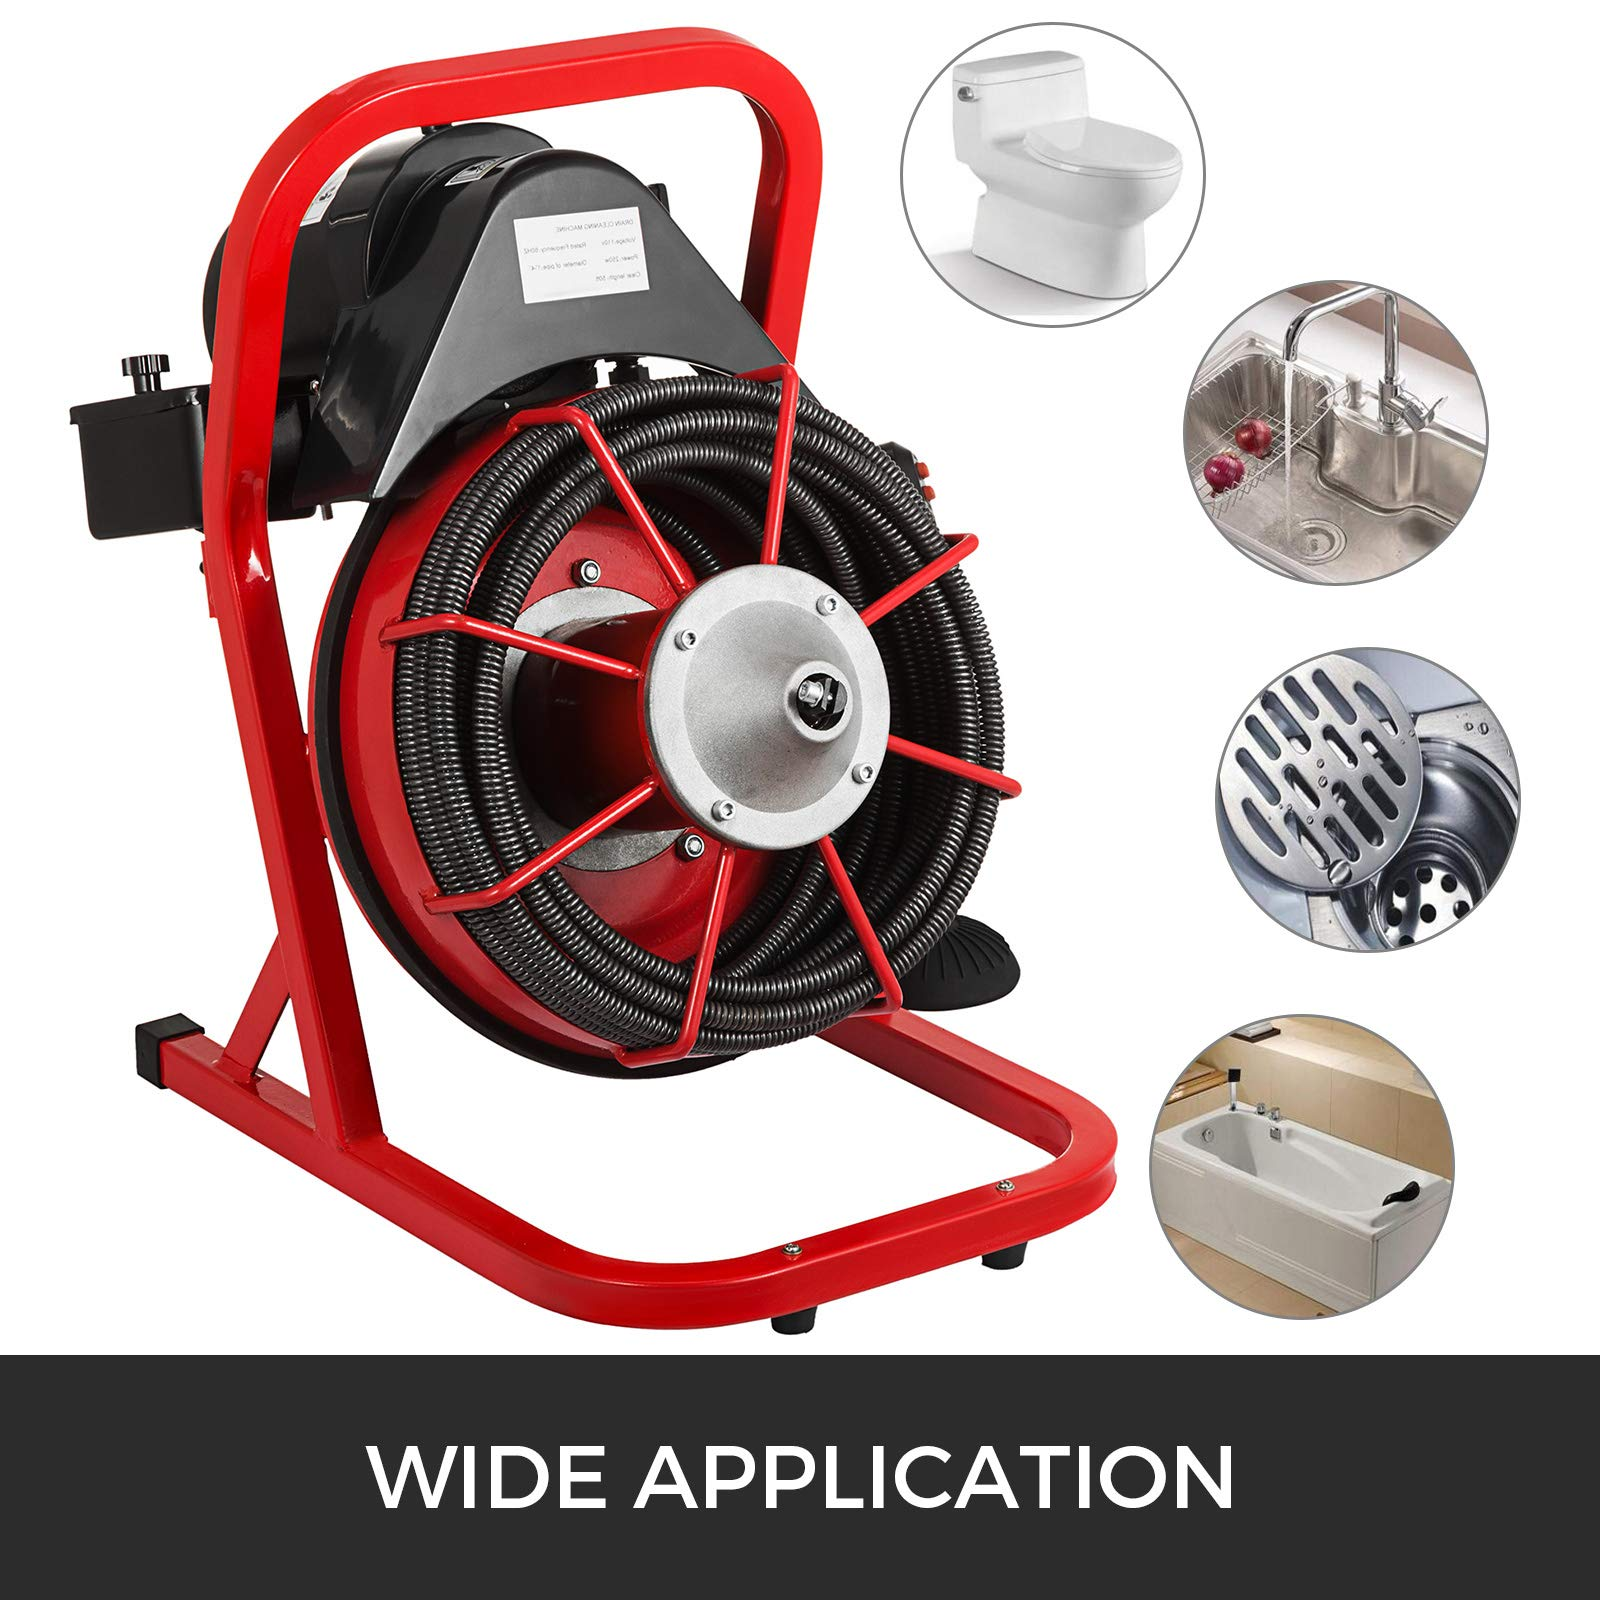 VEVOR 50 Ft x 1/2 Inch Drain Cleaner Machine Best fit 1''(25mm) to 4''(100mm) Pipes Drain Cleaning Machine Portable Drain Auger Cleaner with 4 Cutters Electric Drain Auger Plumbing Tool (50Ft x 1/2In) by VEVOR (Image #3)